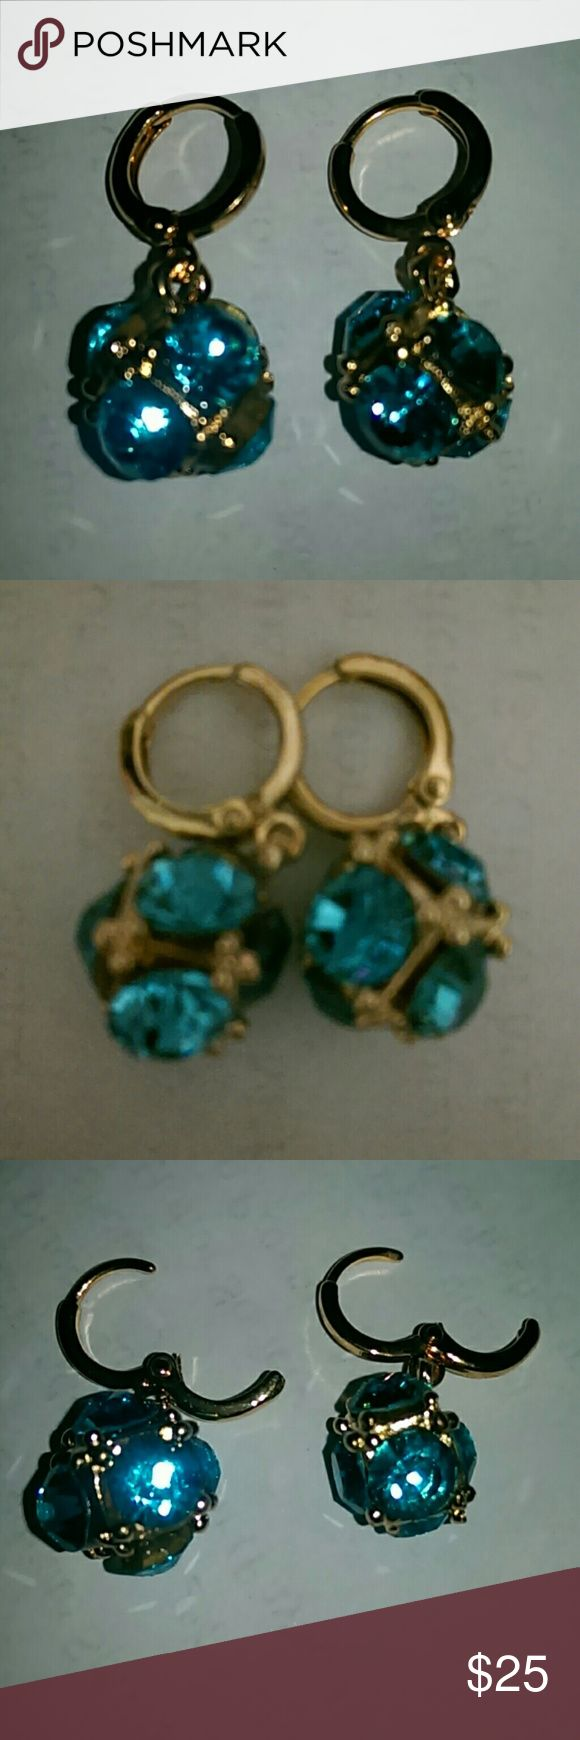 6-Sided Blue Crystal Earrings Shaped like a set of Dice with Crystals on each face. Swarovski Jewelry Earrings